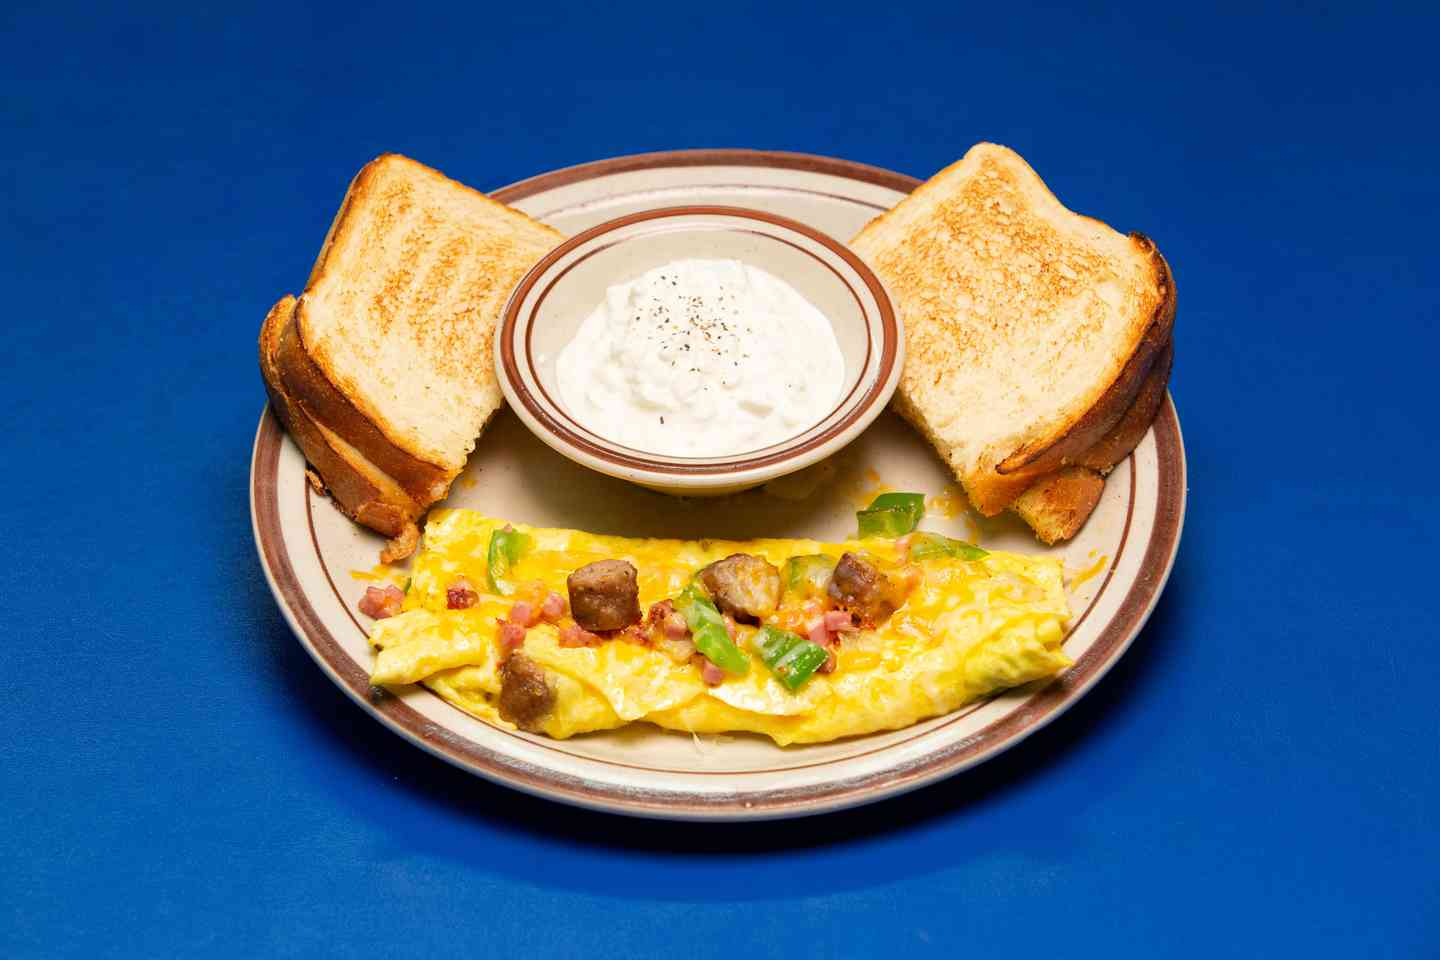 *Meat Lovers Omelet